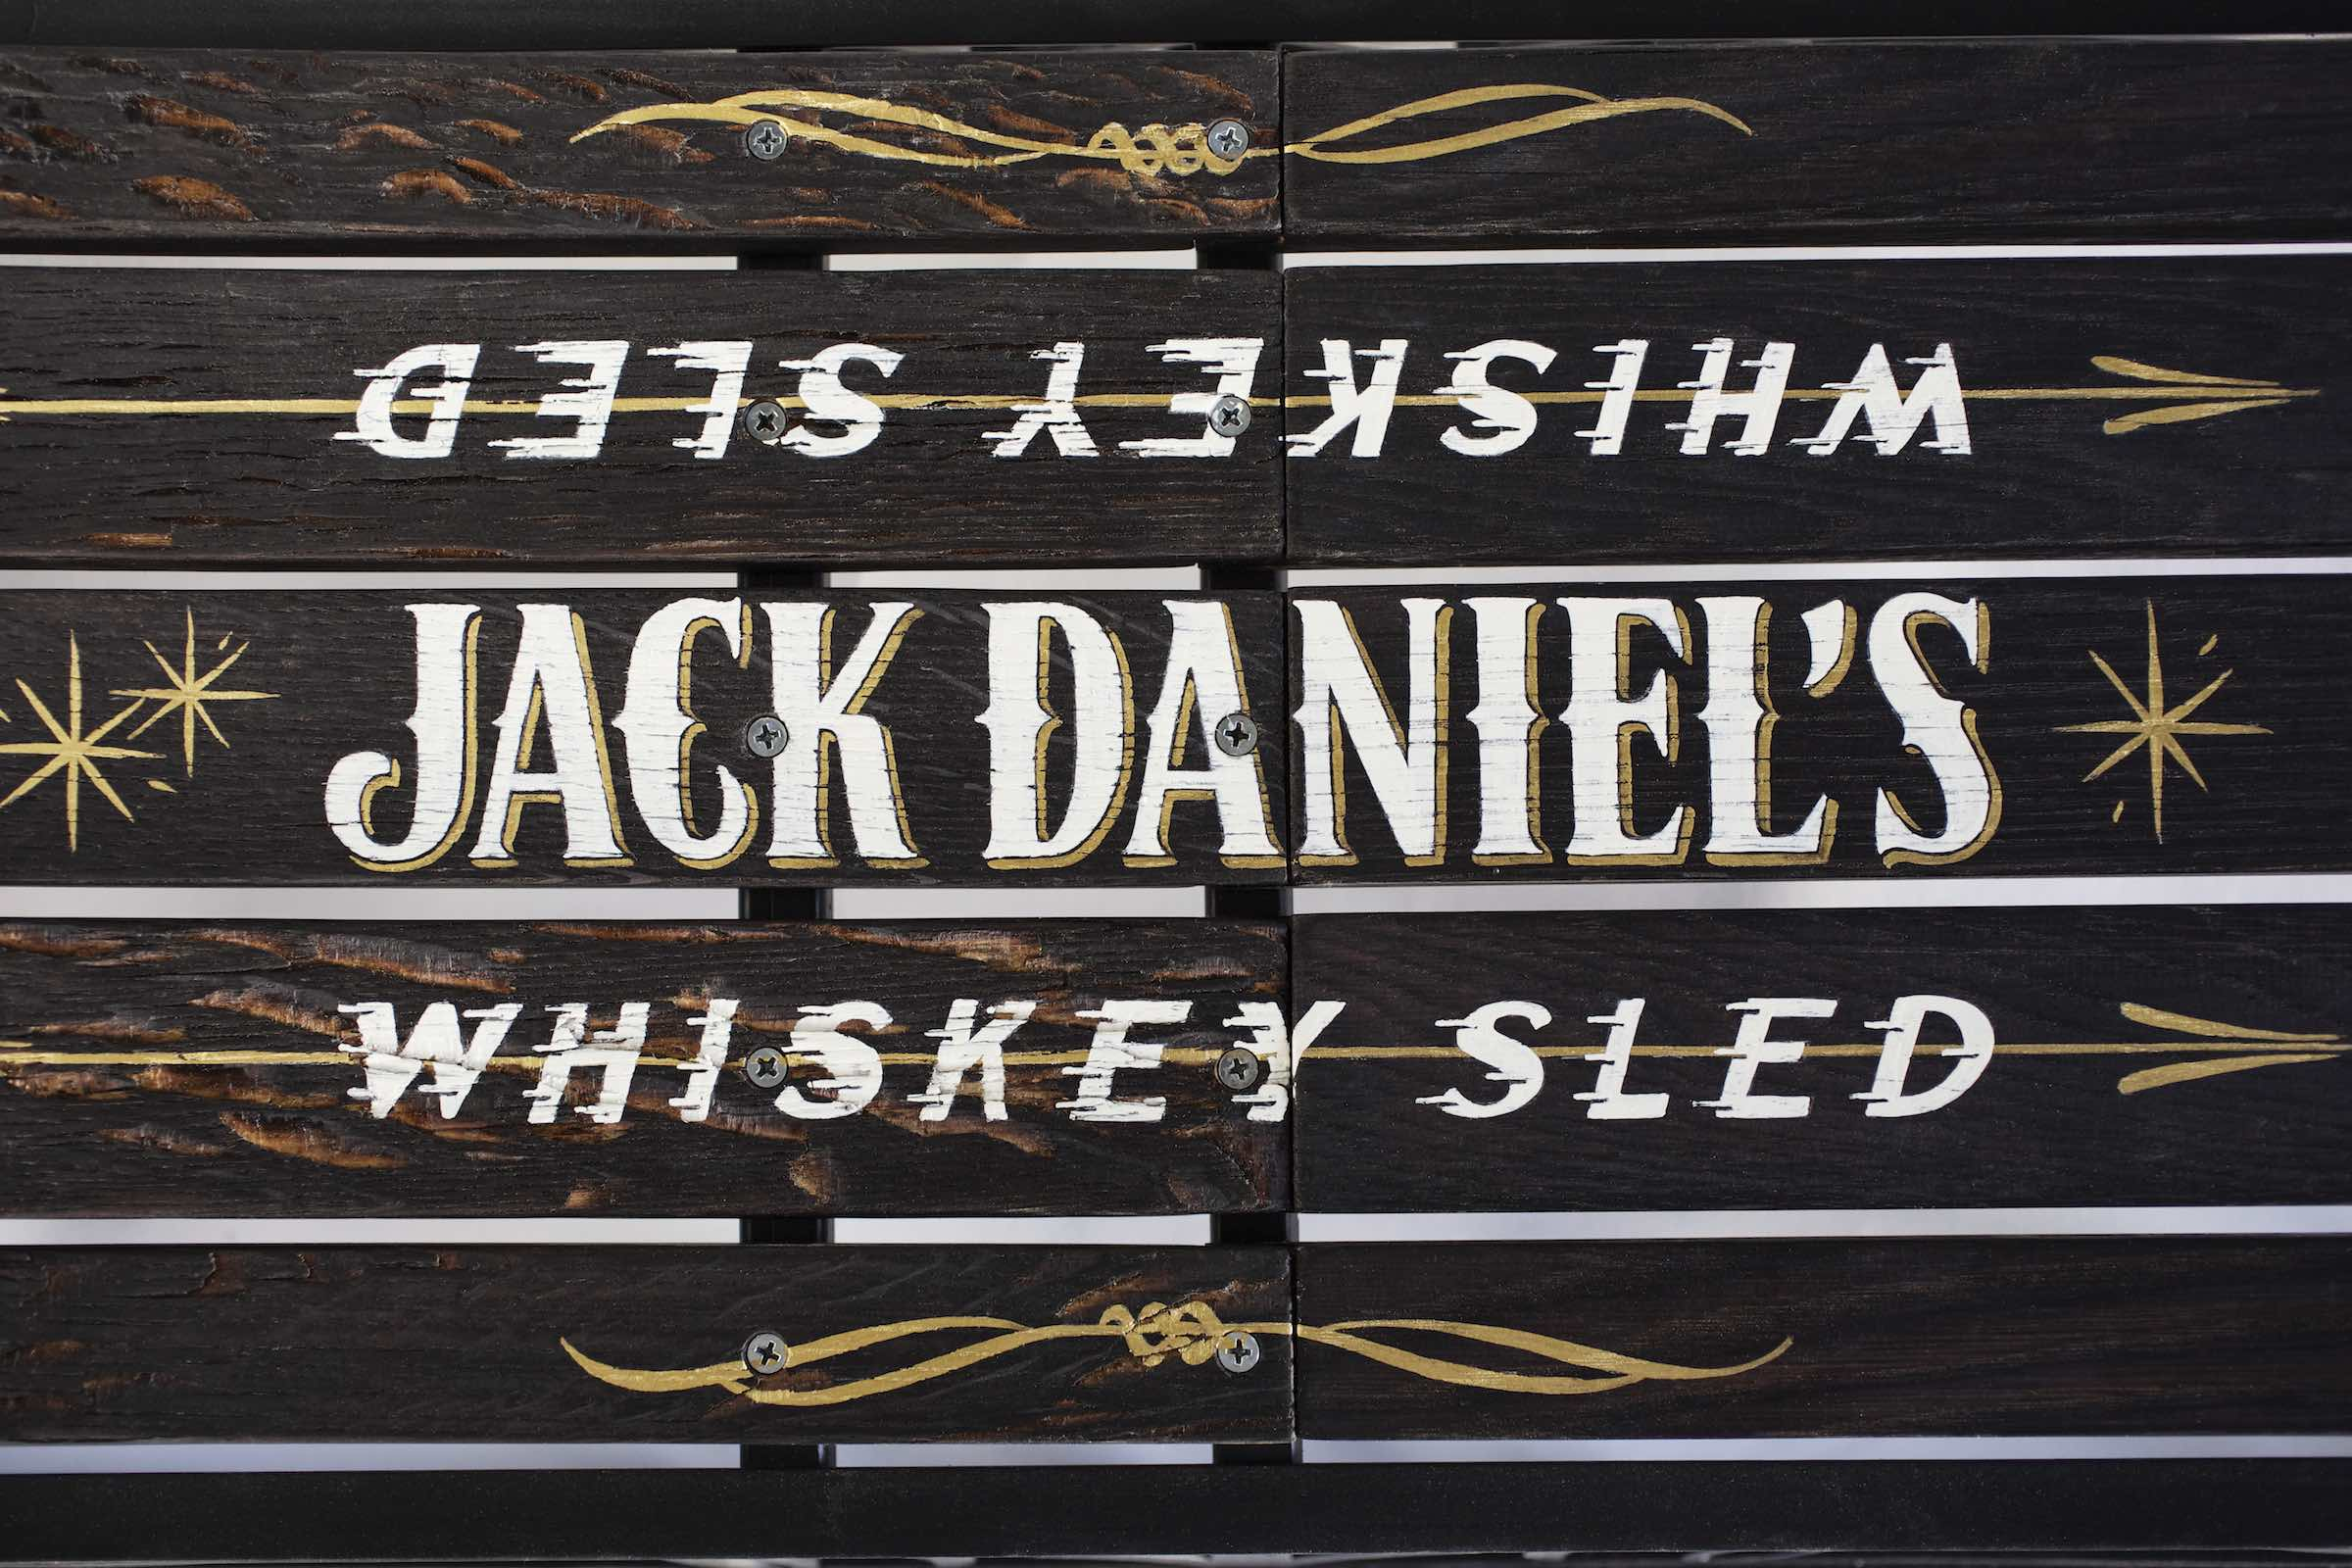 JackDaniels_industrial_fabrication_whiskey_031